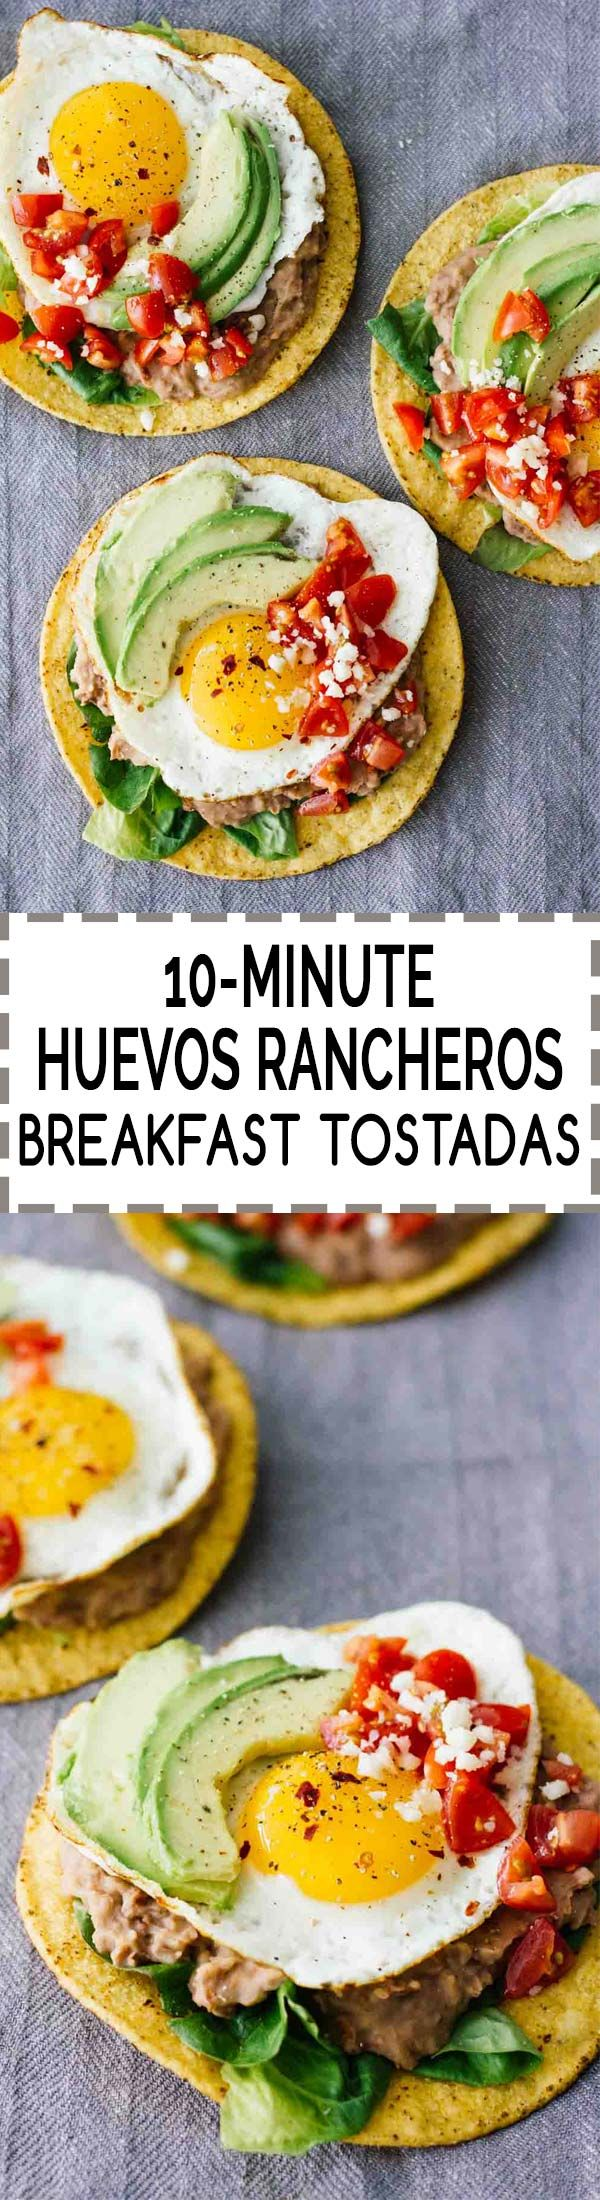 10-Minute Huevos Rancheros Breakfast Tostadas! Vegetarian and perfect for a quick and easy breakfast, lunch, or even dinner. Head over to www.JarOfLemons.com for the SUPER easy recipe, or click through to find out more about the easy-to-make beans used and more tostada recipes! #ad